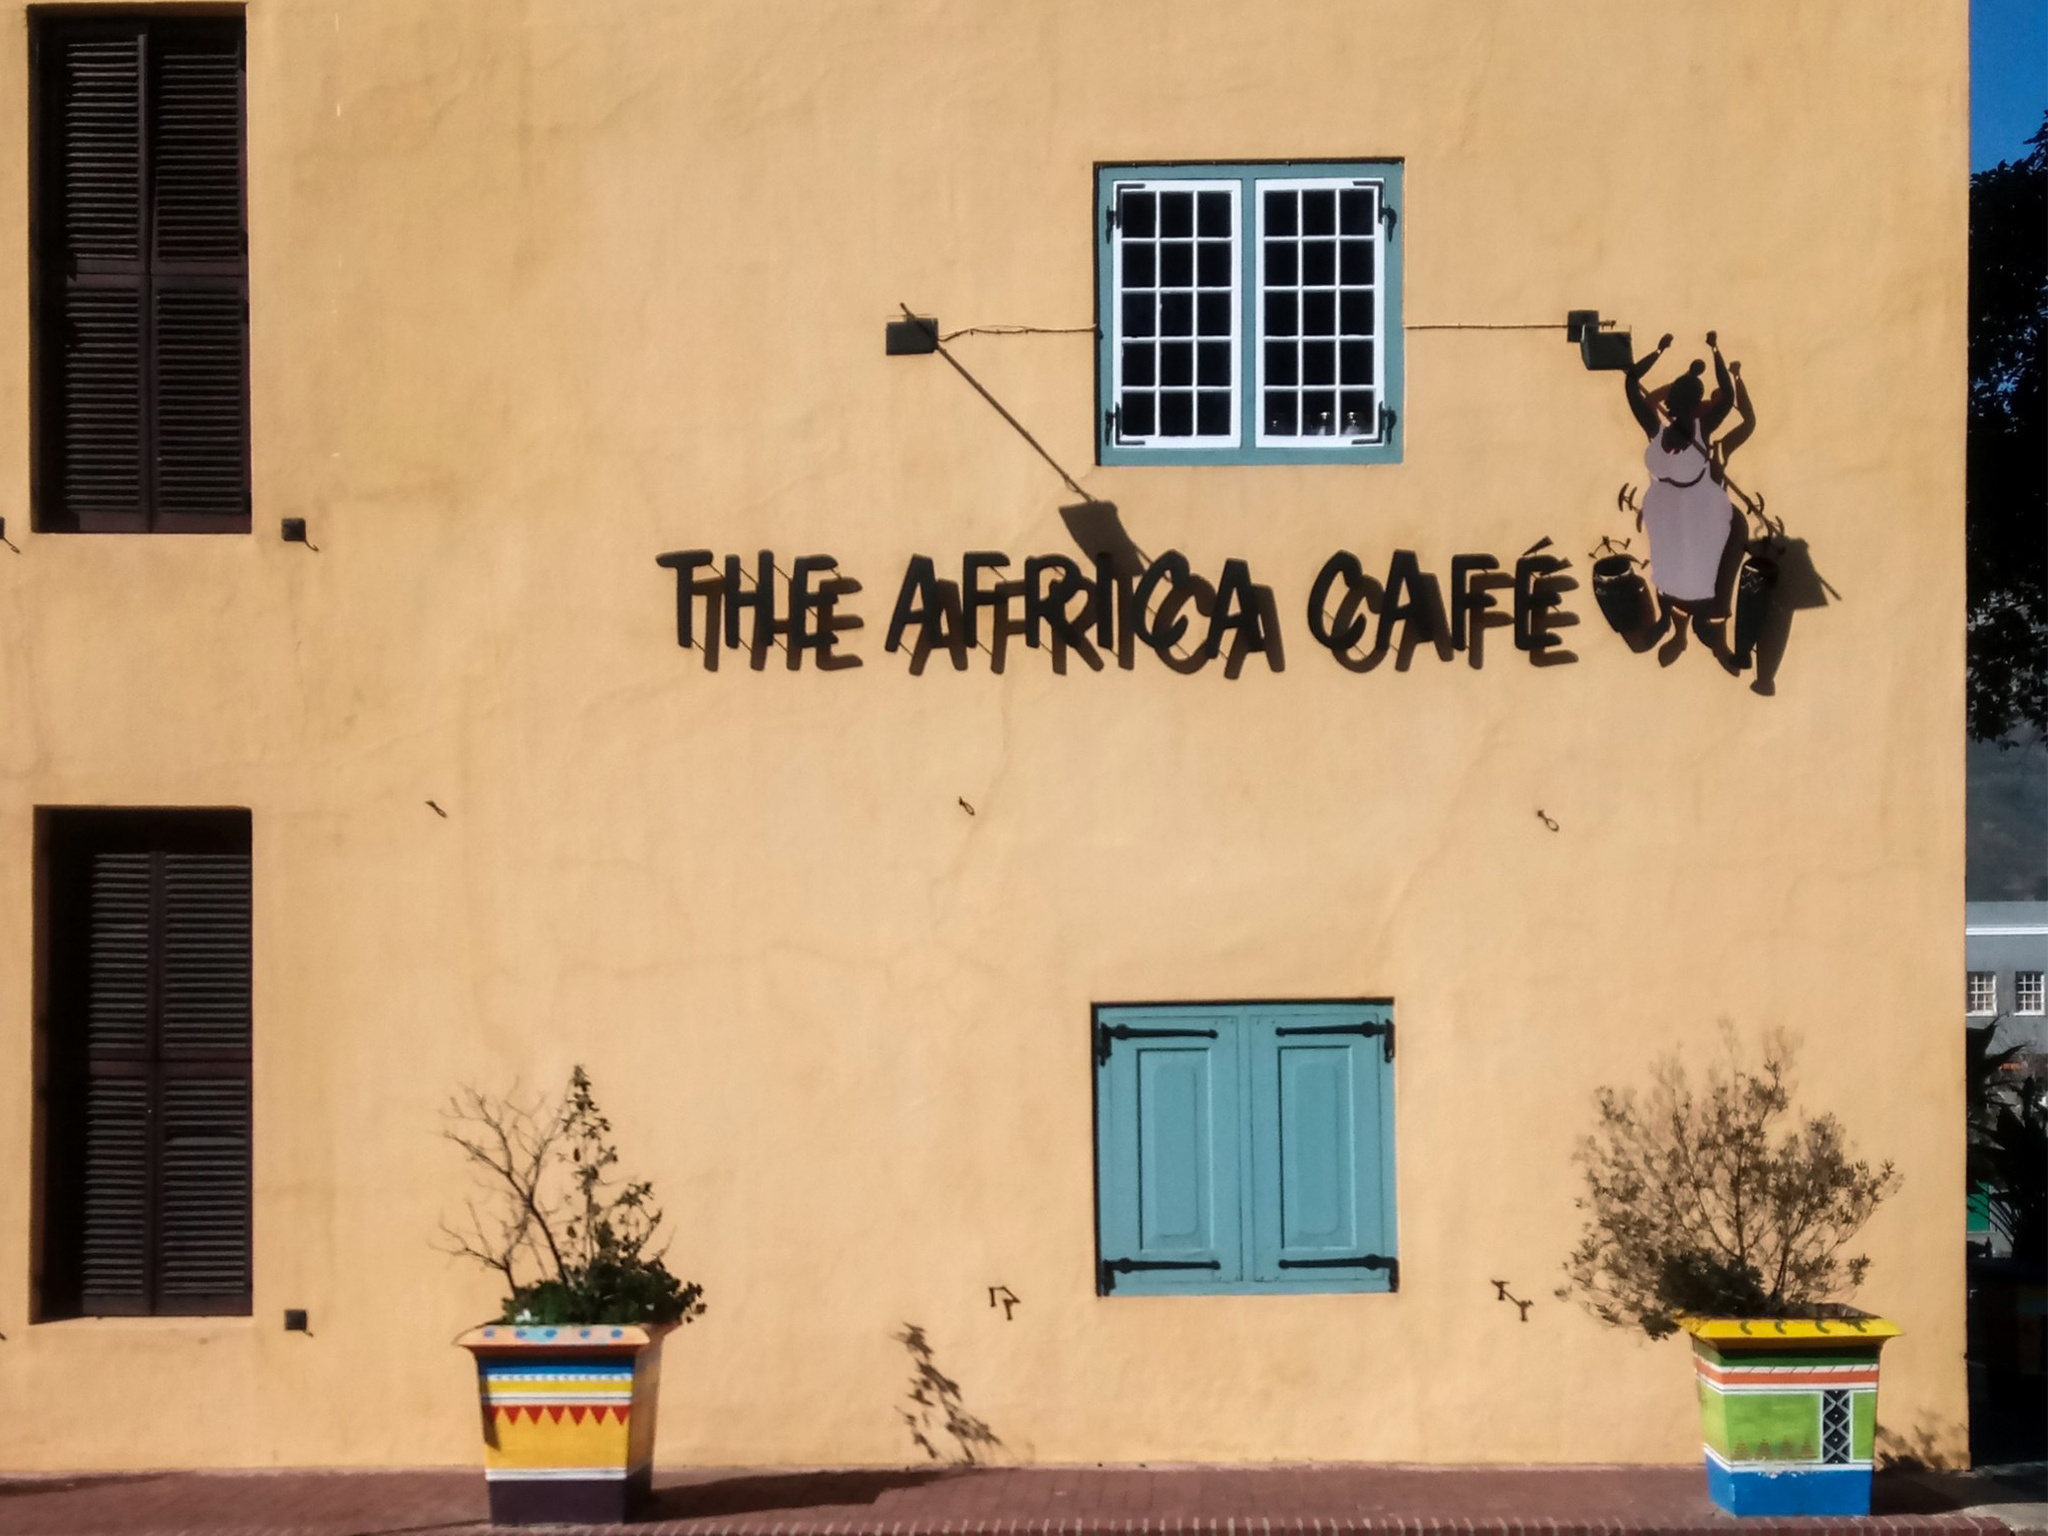 The exterior of Africa Café in Cape Town